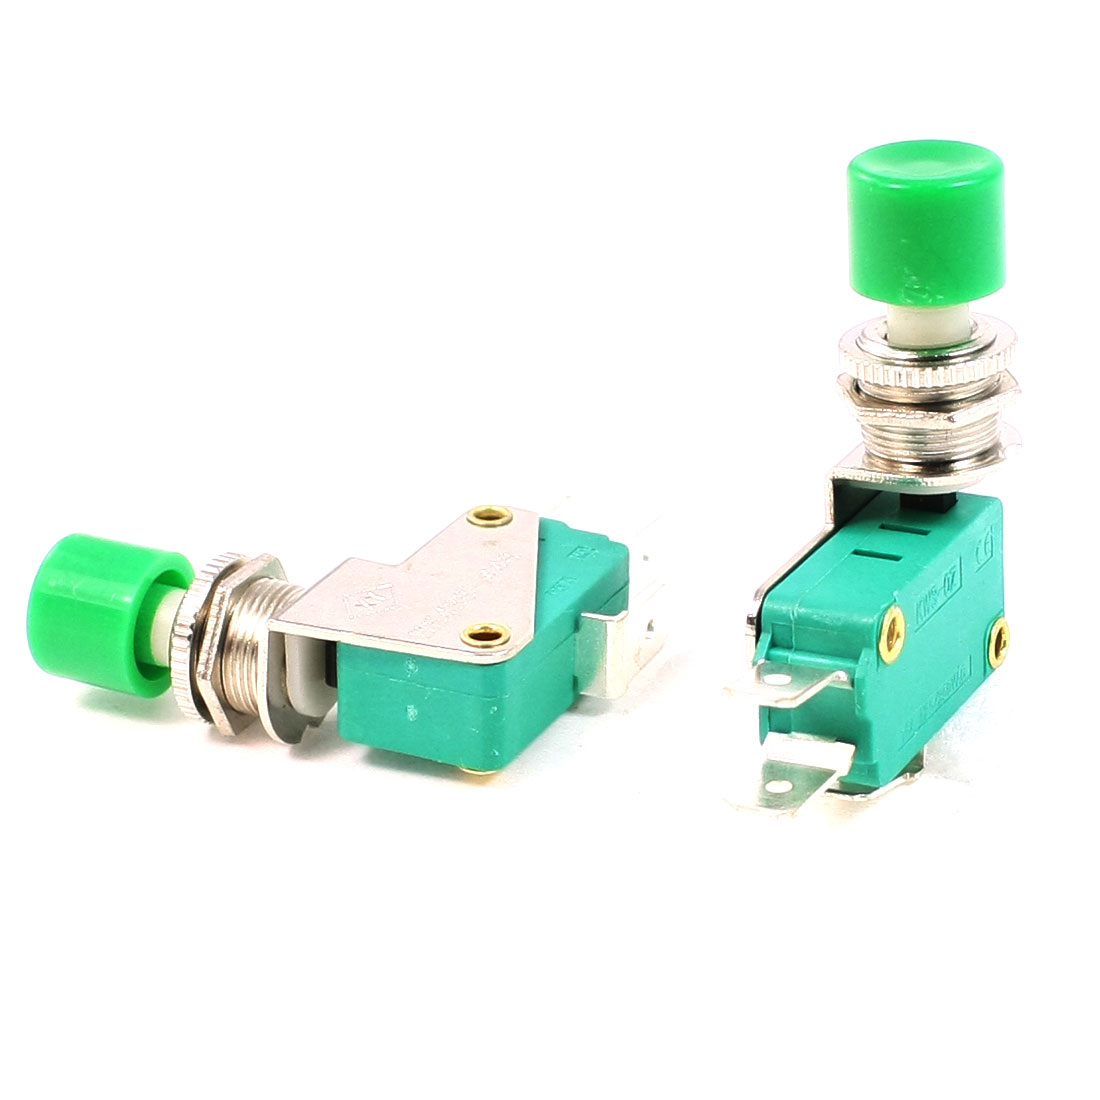 2 Pcs SPDT 1NO 1NC Green Button Actuator Momentary Miniature Micro Switch